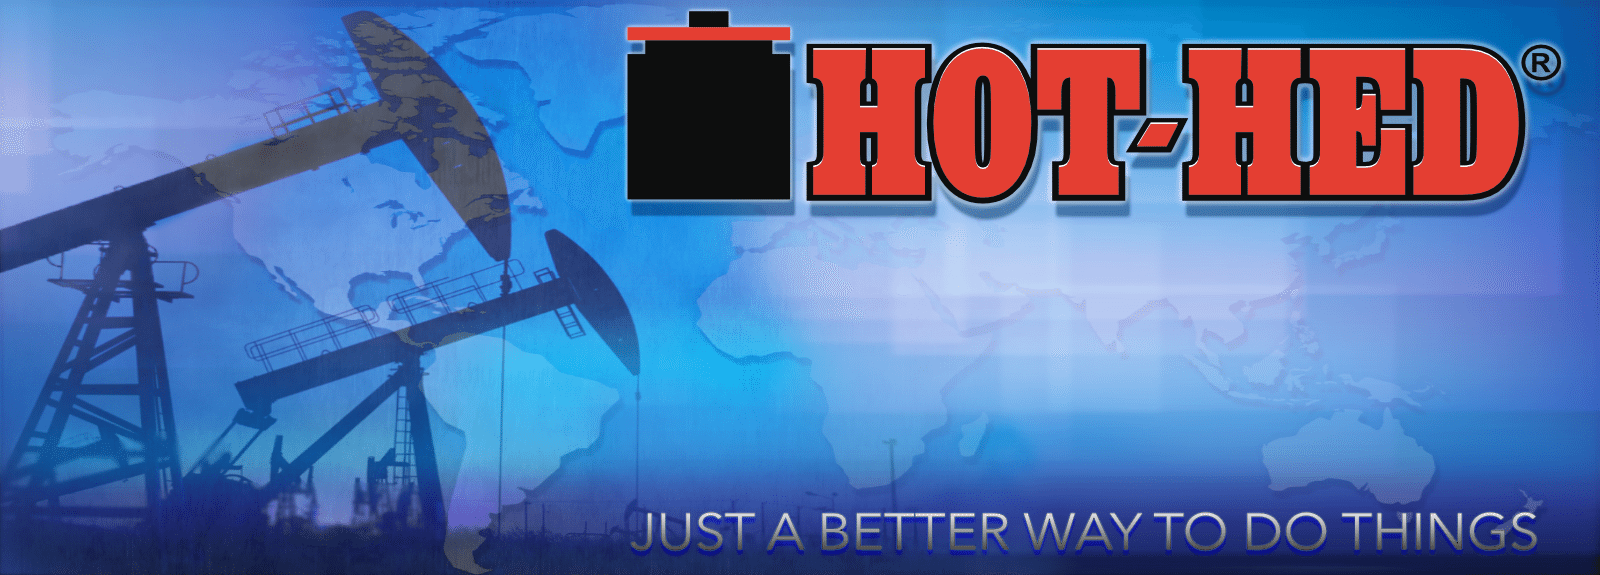 Hot-Hed® International Worlwide Locations & Contact Info